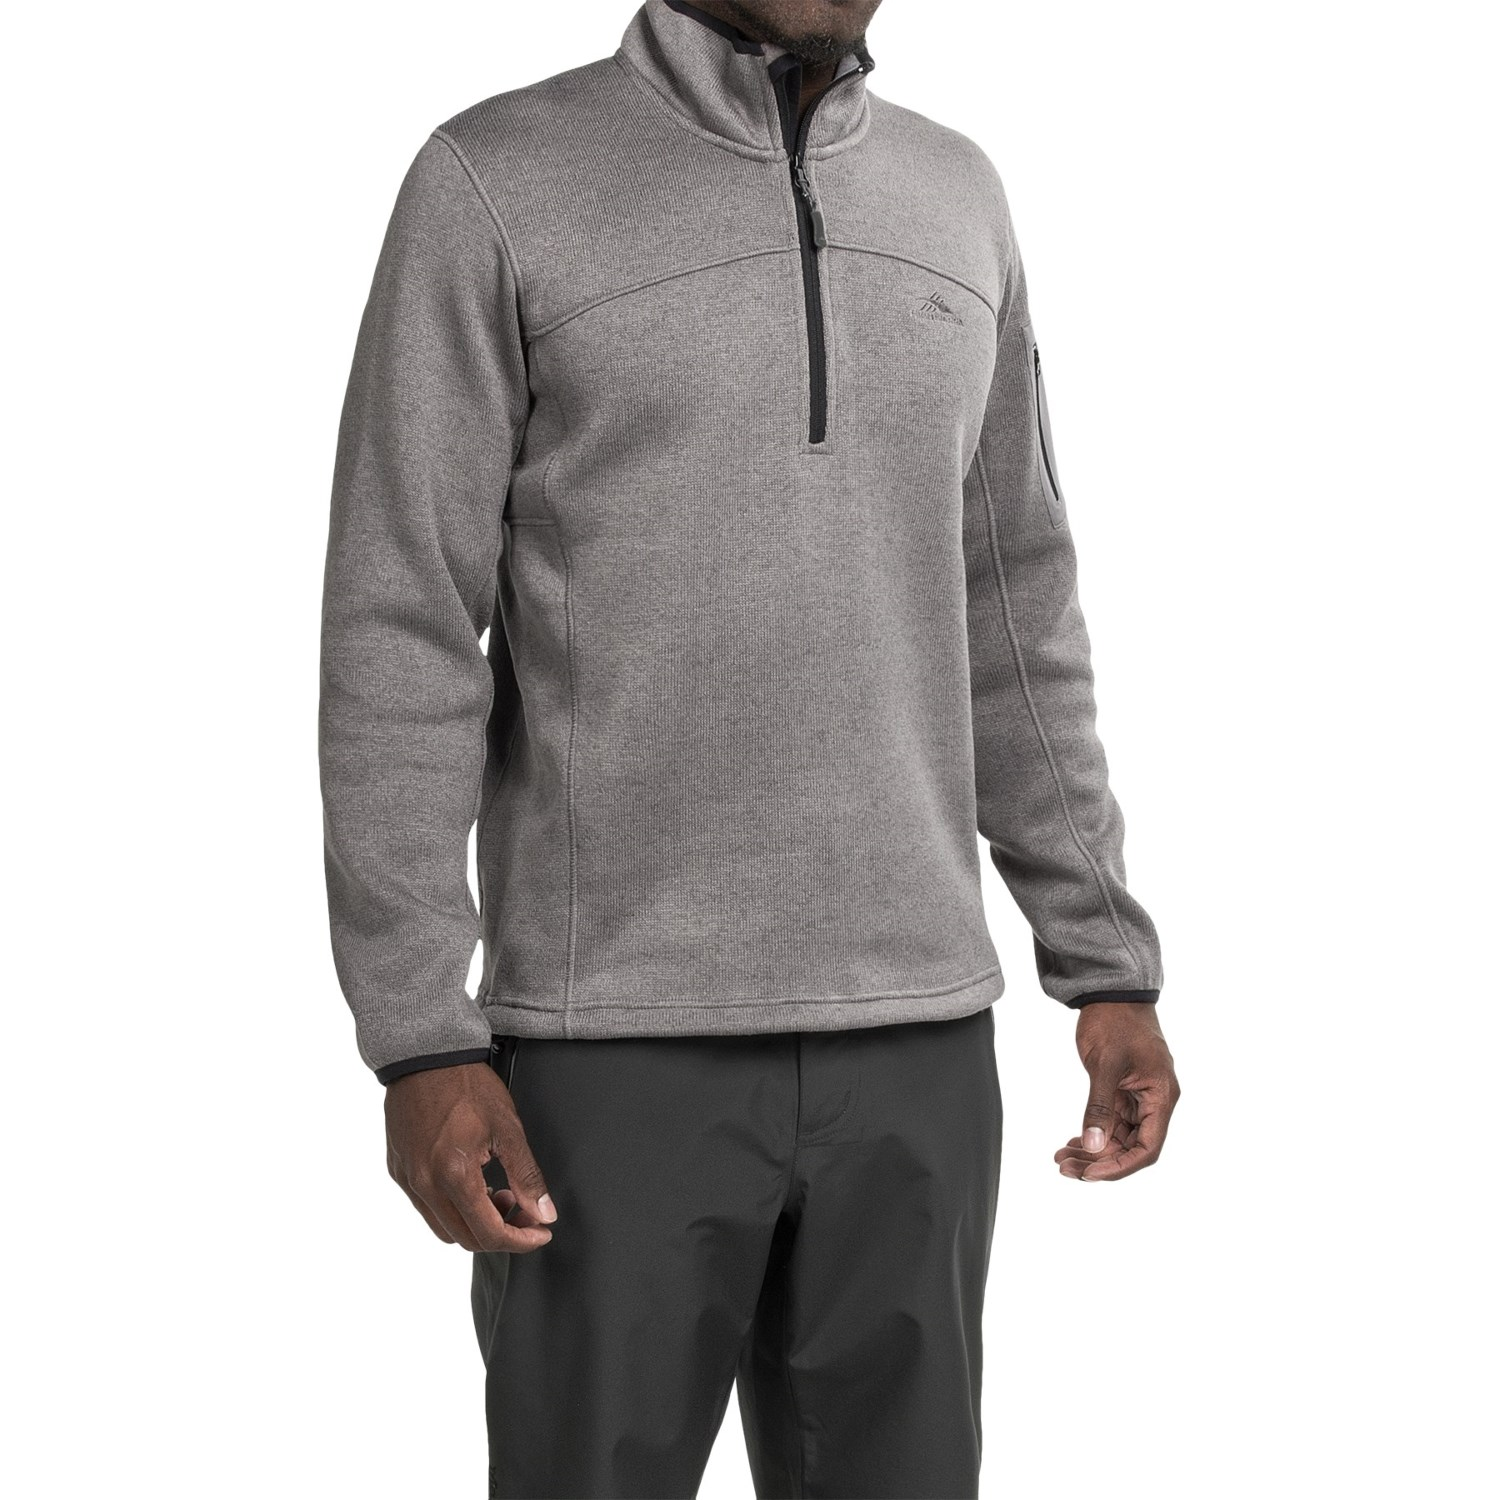 funston men Nuts & bolts lightweight full zip up insulated men's jacket 4-way stretch material for comfort, layering quilted torso with soft knit sides and sleeves.